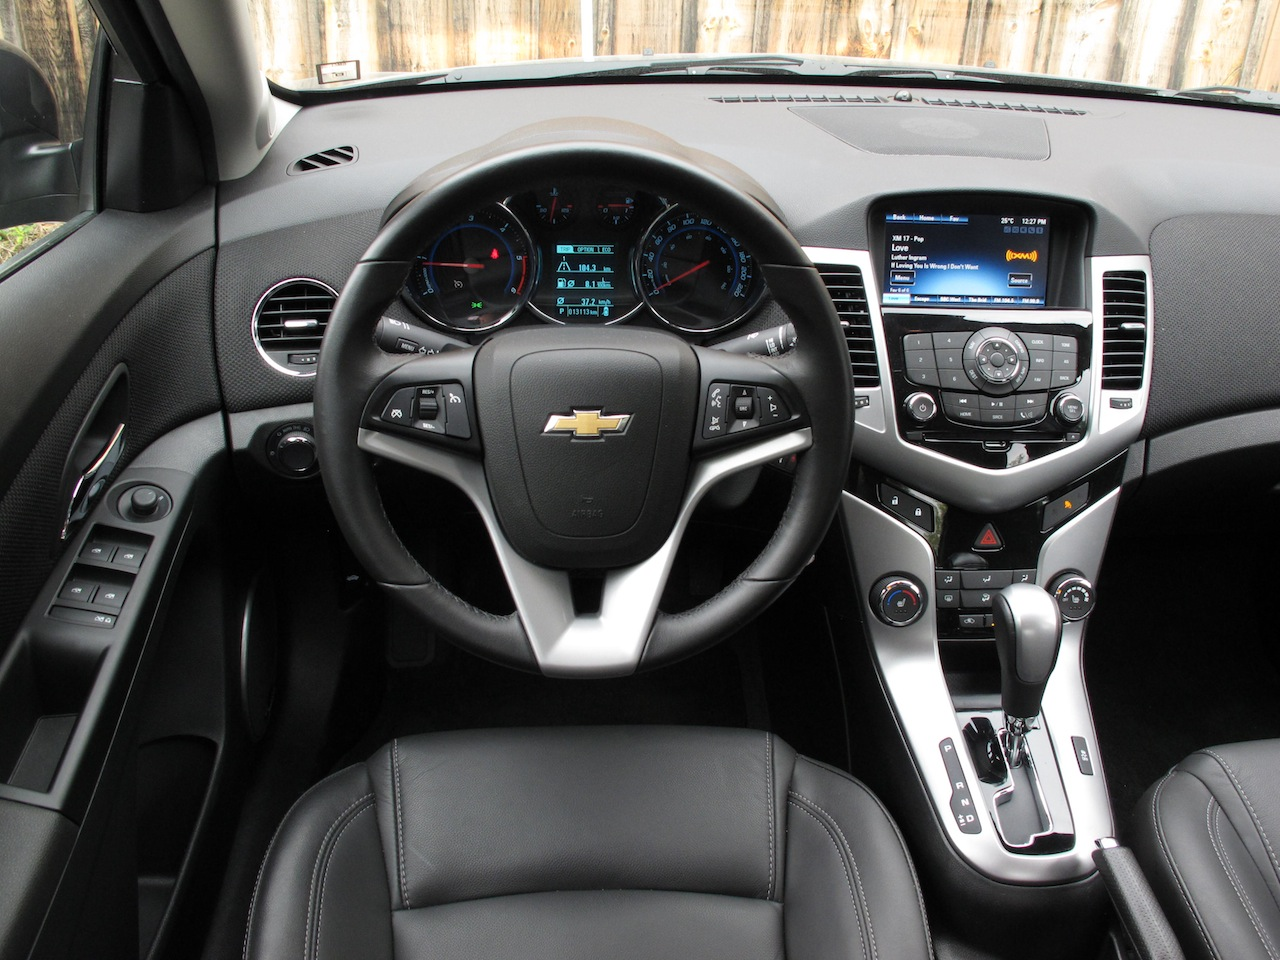 2014 雪佛蘭 Chevrolet Cruze Diesel Review Cars Photos Test Drives And Reviews Canadian Auto